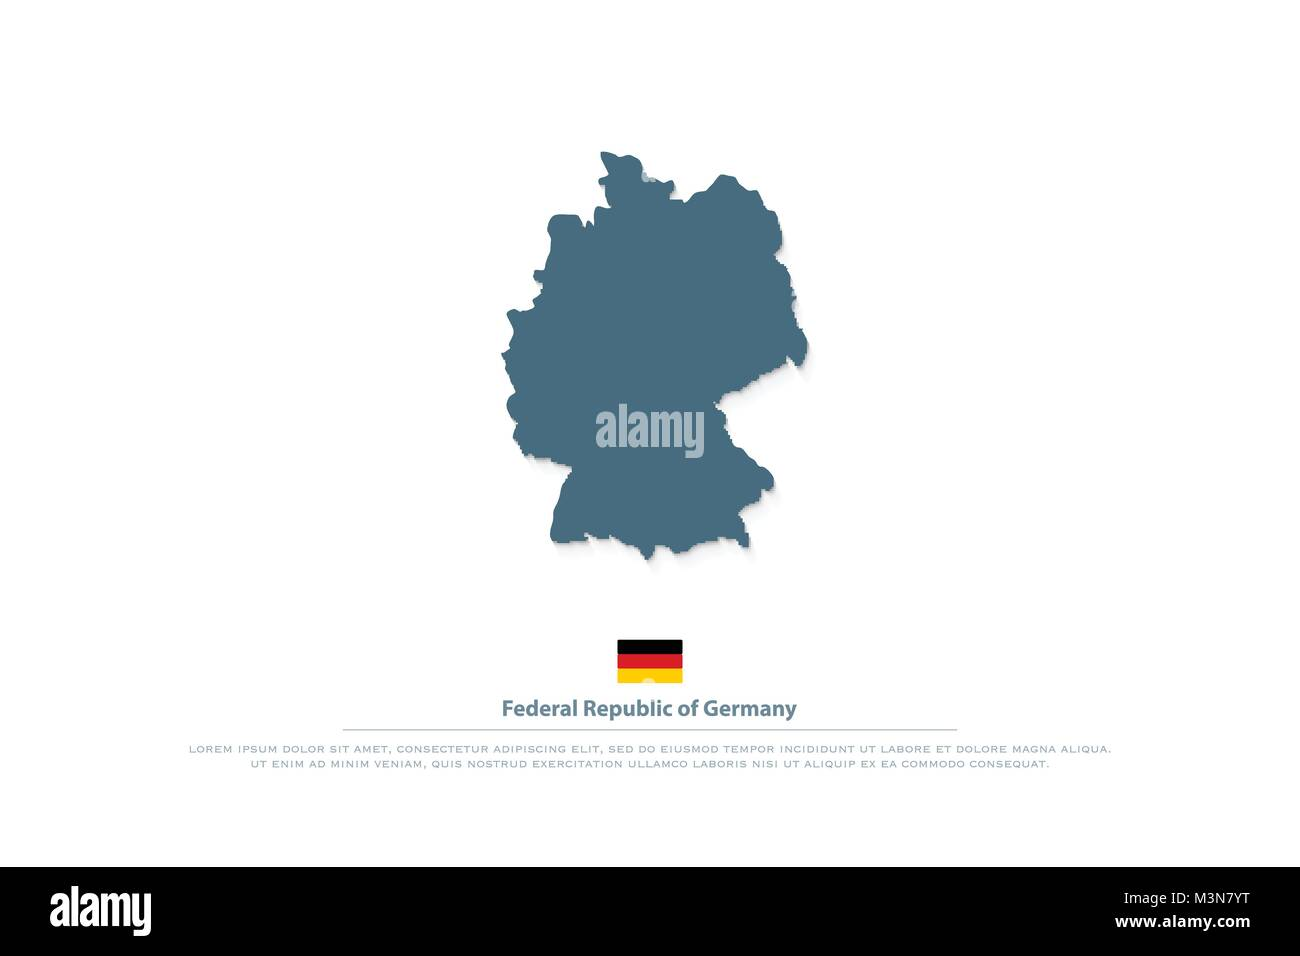 federal republic of germany map and official flag icon vector german political map logo european state geographic banner template deutschland